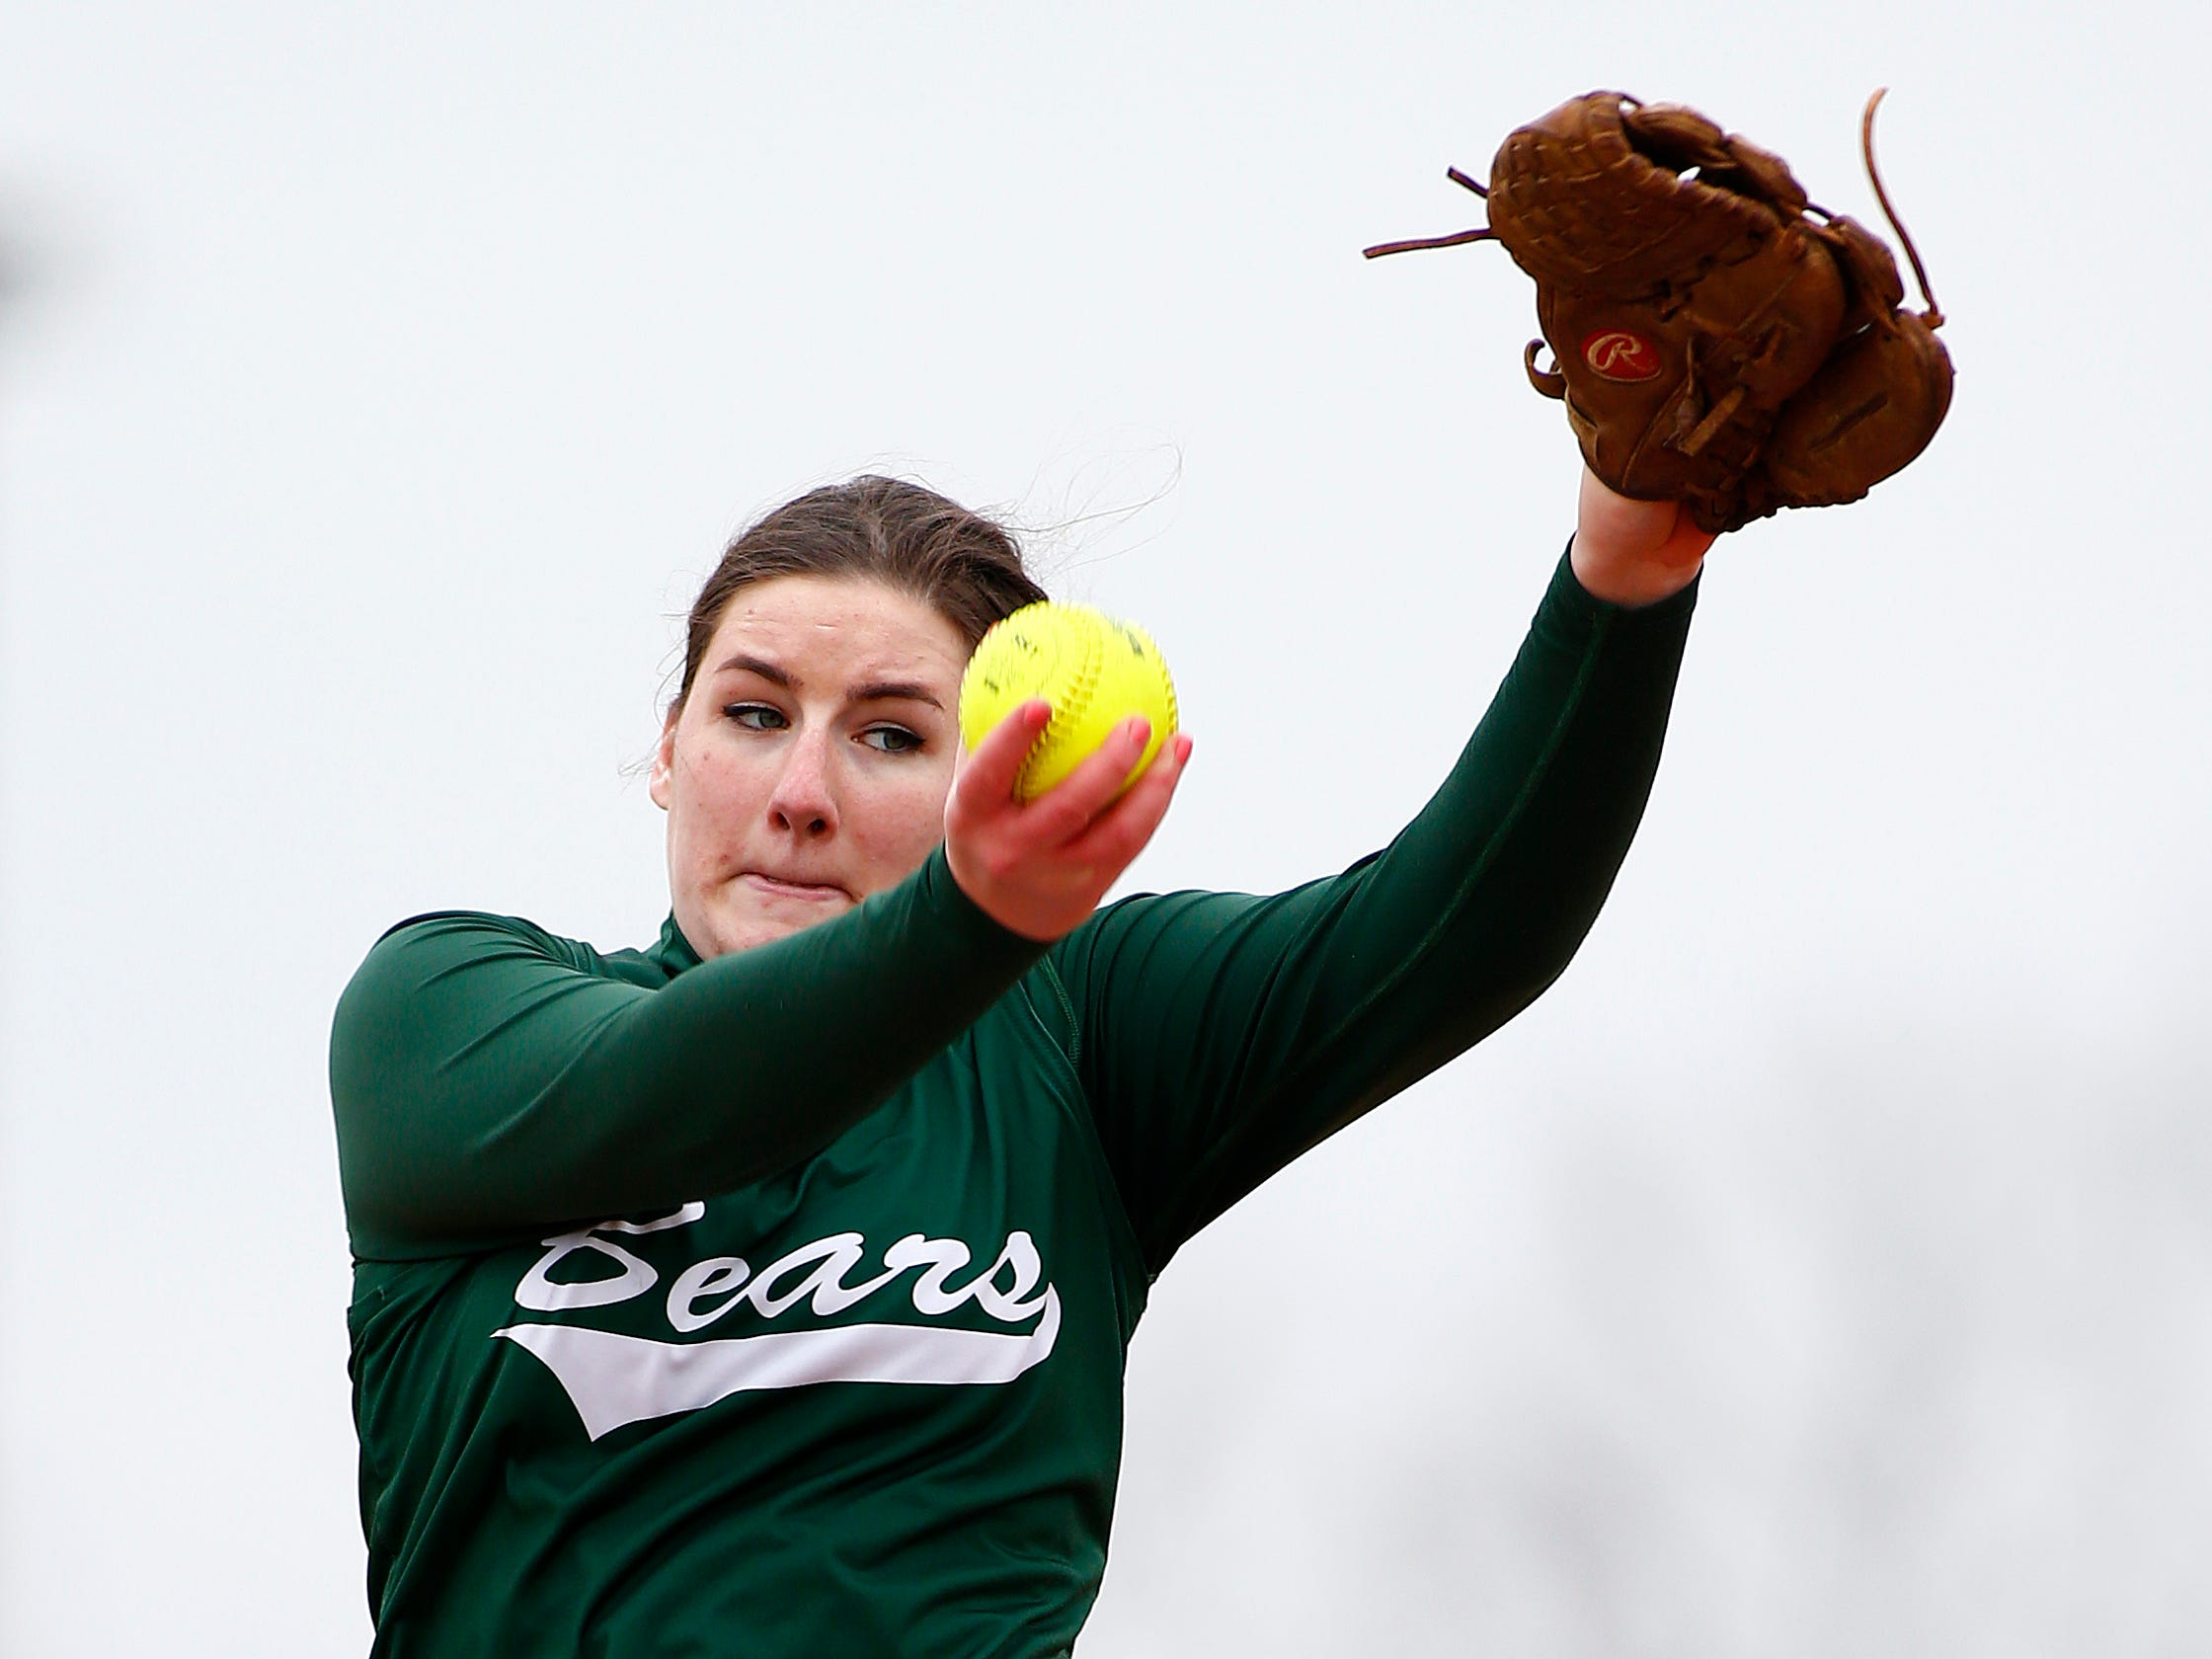 East Brunswick pitcher Kaleigh Dwyer delivers a pitch against Piscataway during a girl's softball game at Piscataway High School in Piscataway, N.J. on Friday, April 10, 2015. Photo by Rich Schultz/ HNT